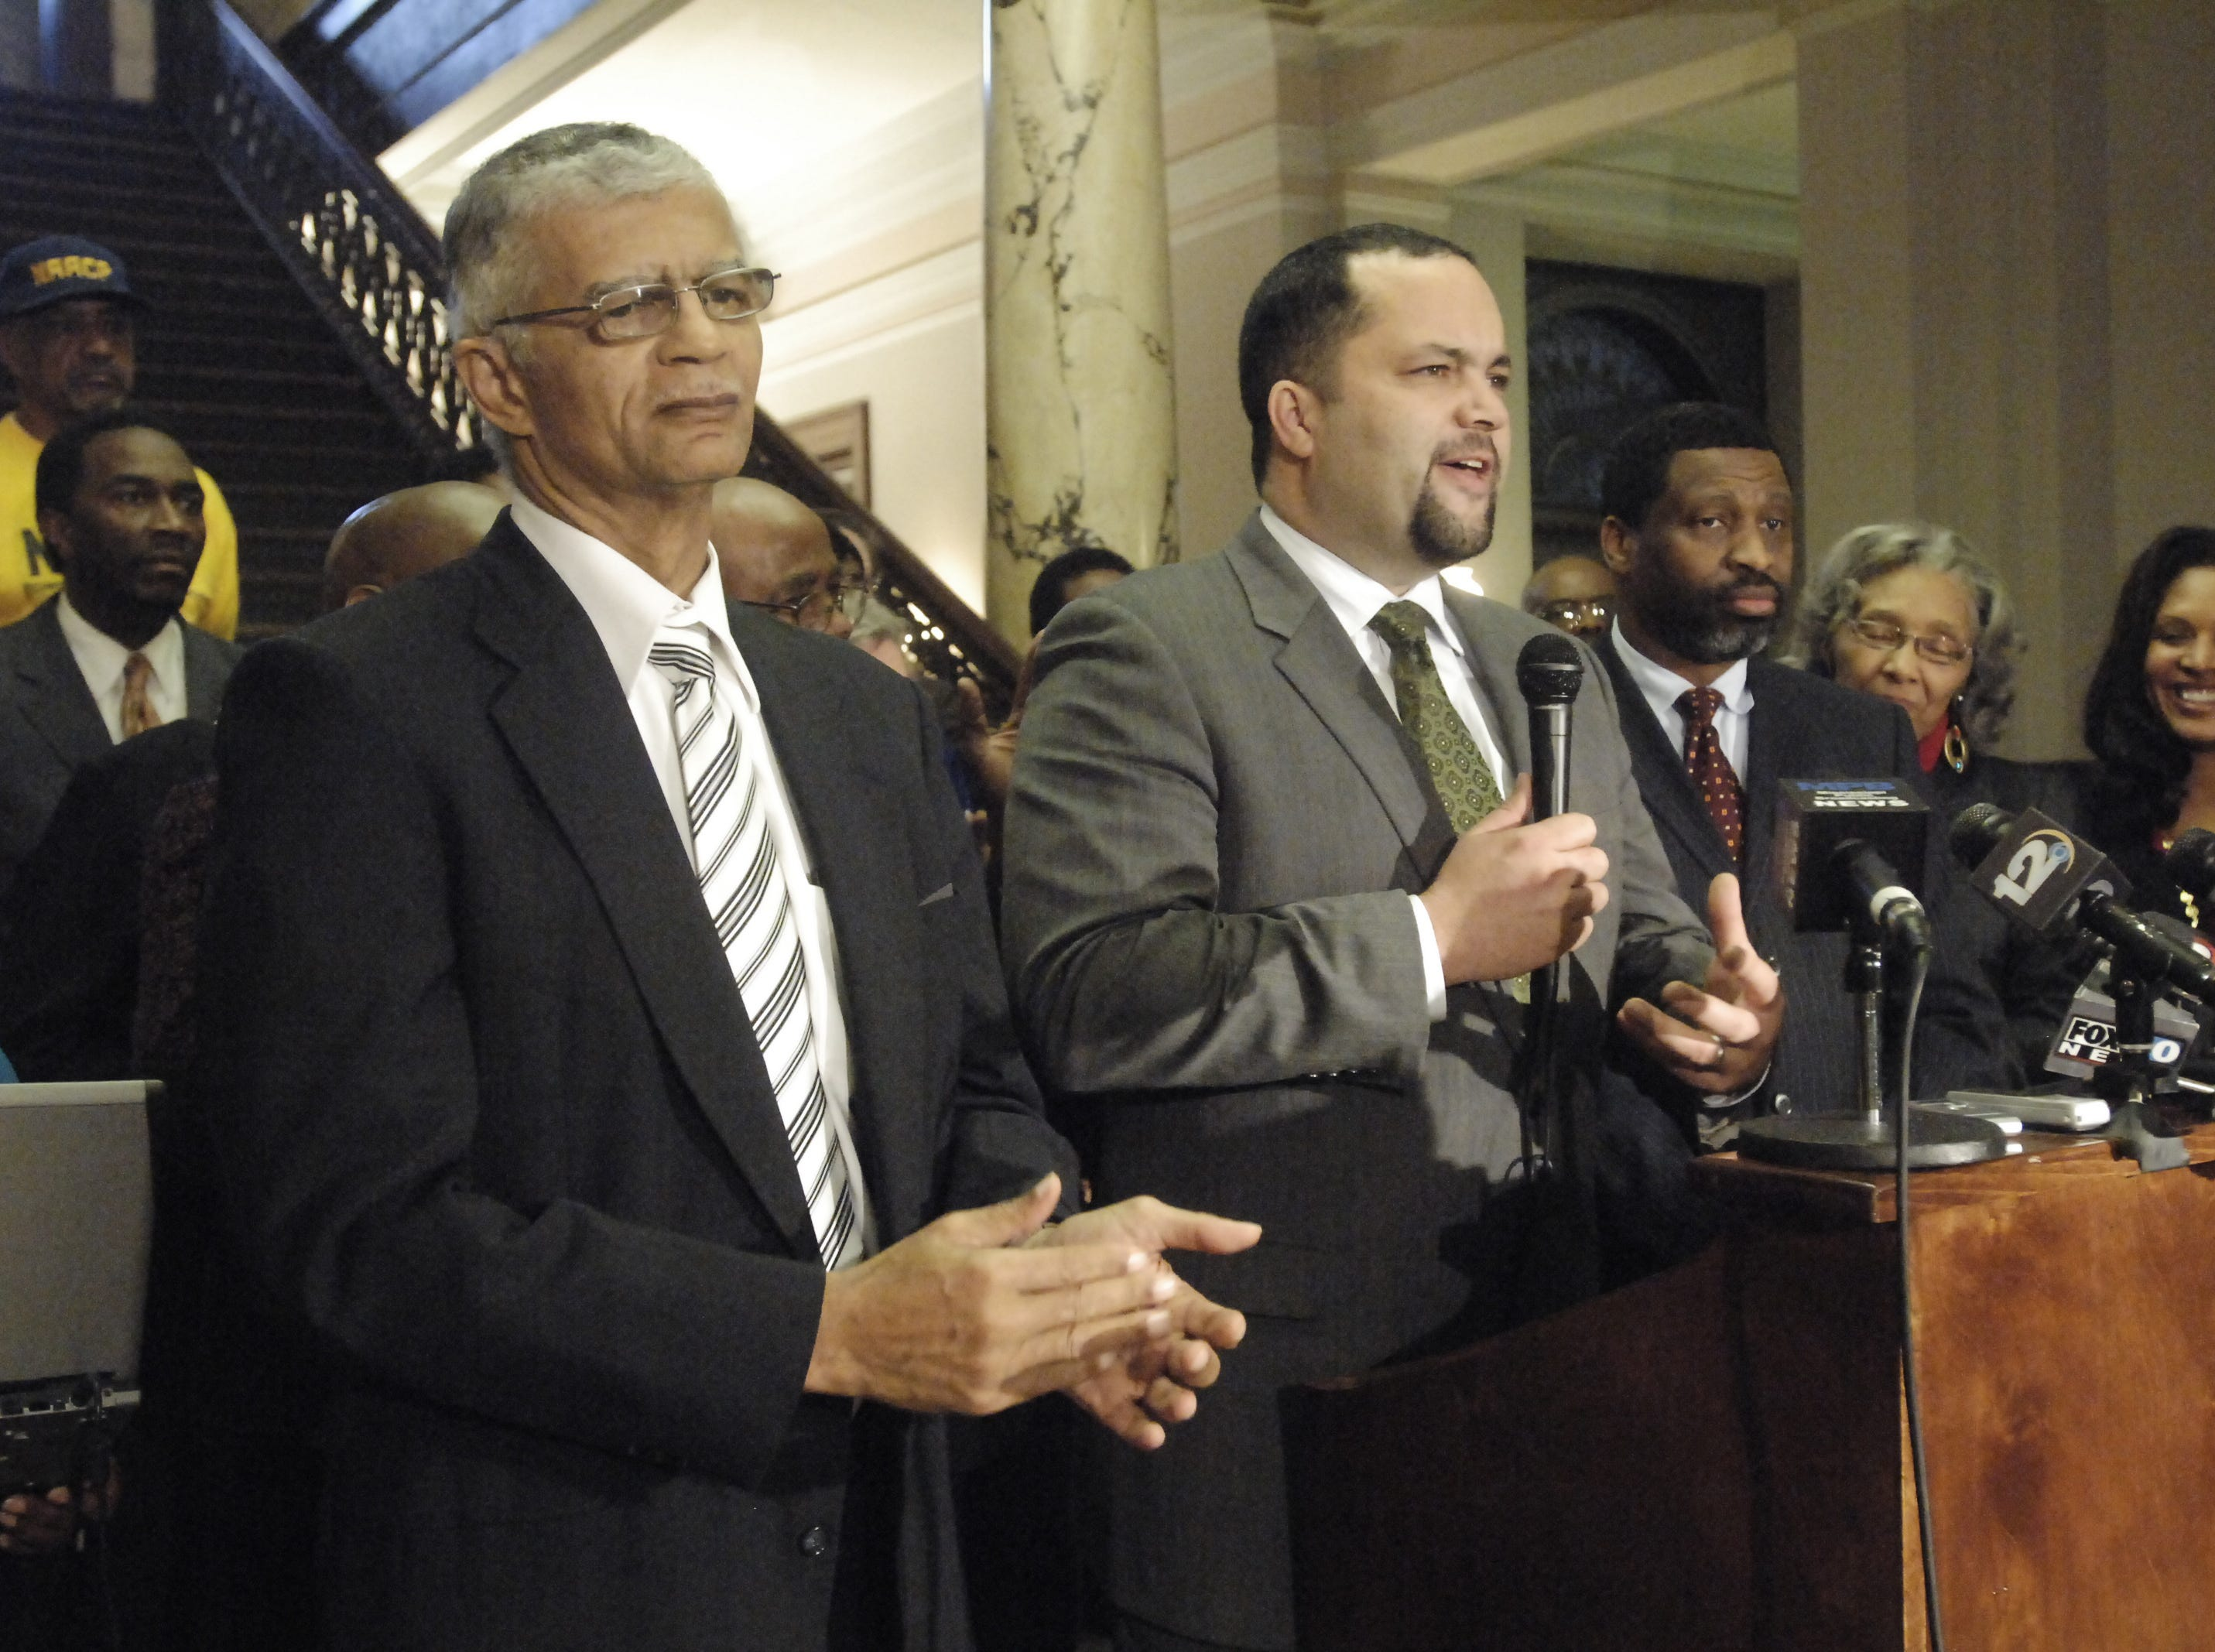 Flanked by attorney Chokwe Lumumba (left) and Ms. NAACP's Derrick Johnson (right), NAACP President and CEO Ben Jealous talks about the release of sisters Jamie and Gladys Scott.